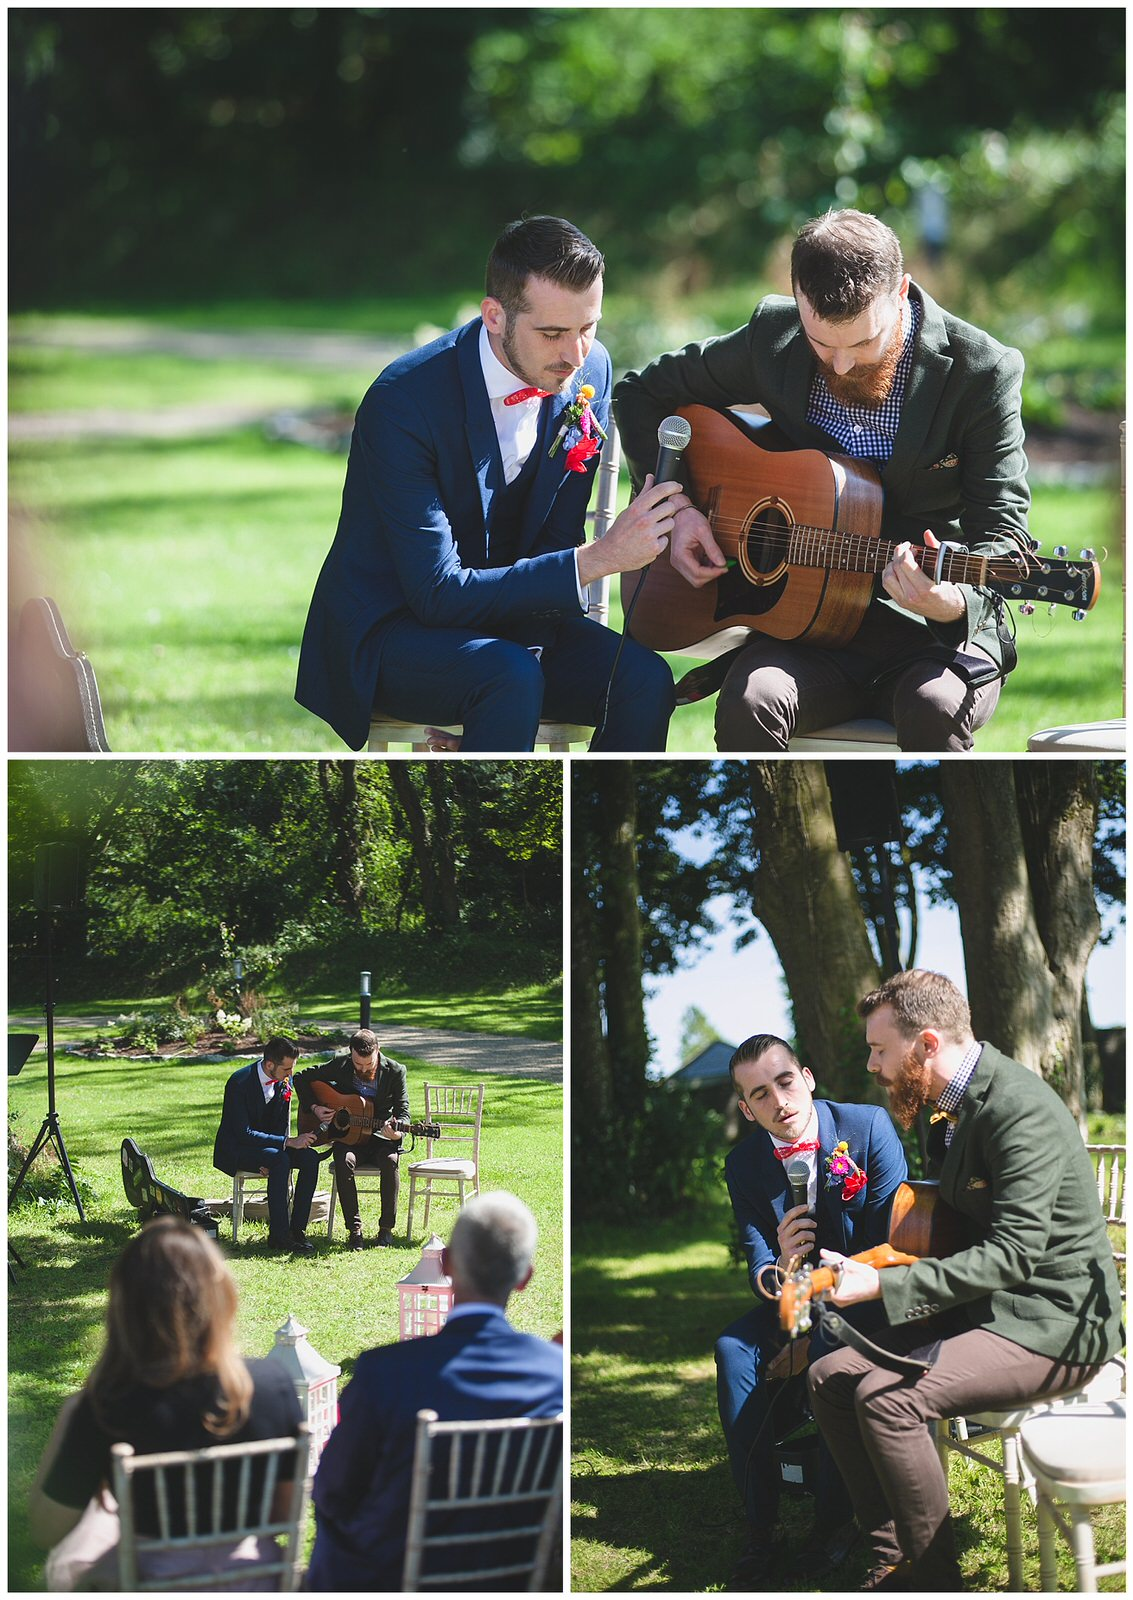 Groom and his brother sing and play guitar during the humanist wedding ceremony